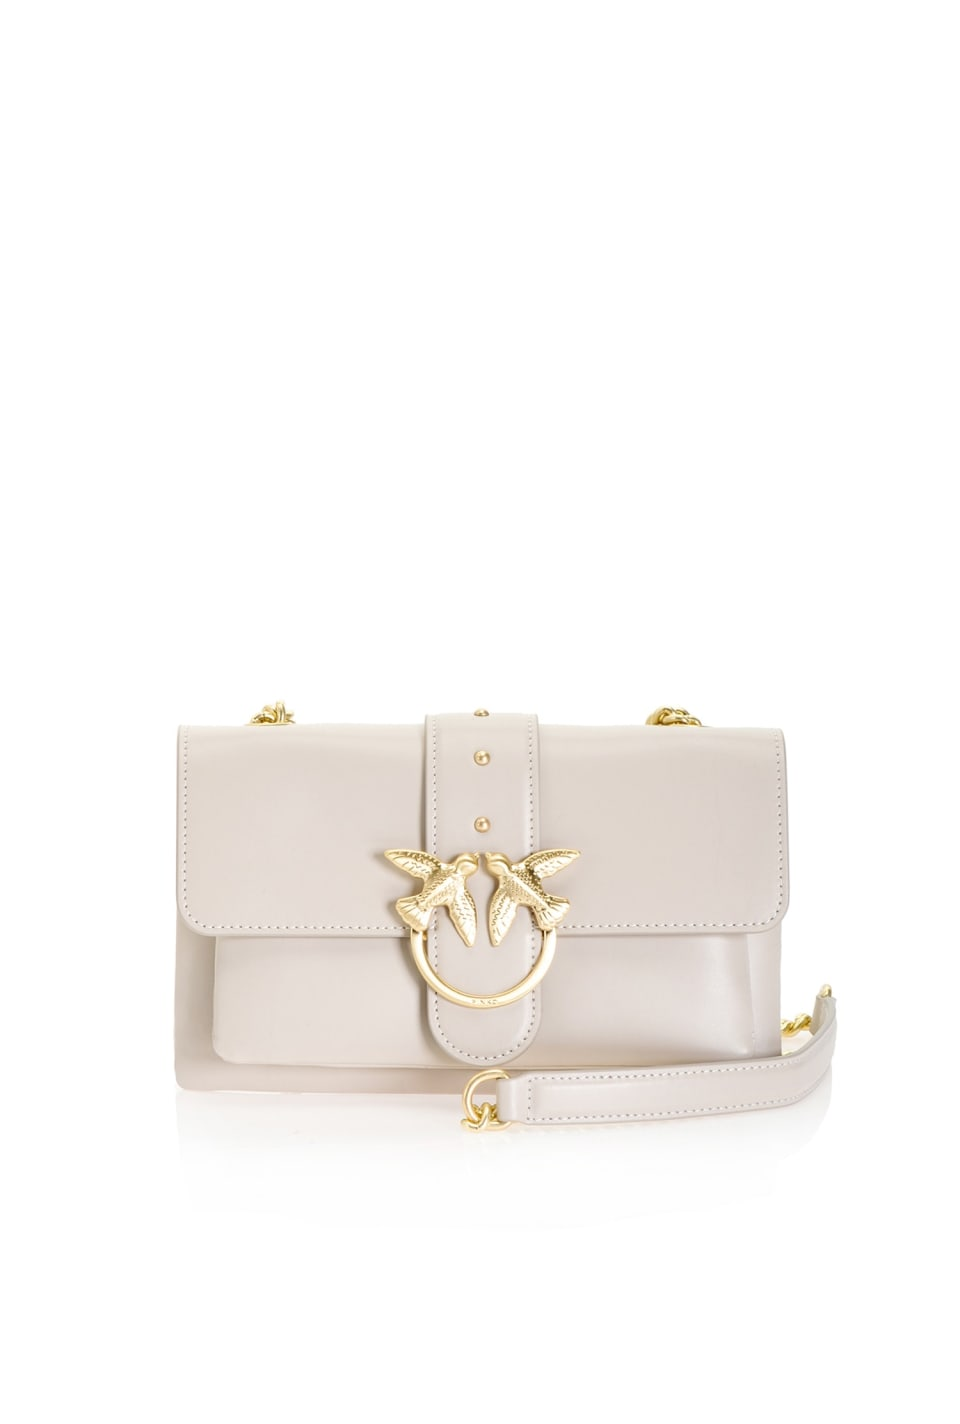 Simply Mini Love Bag Soft in leather